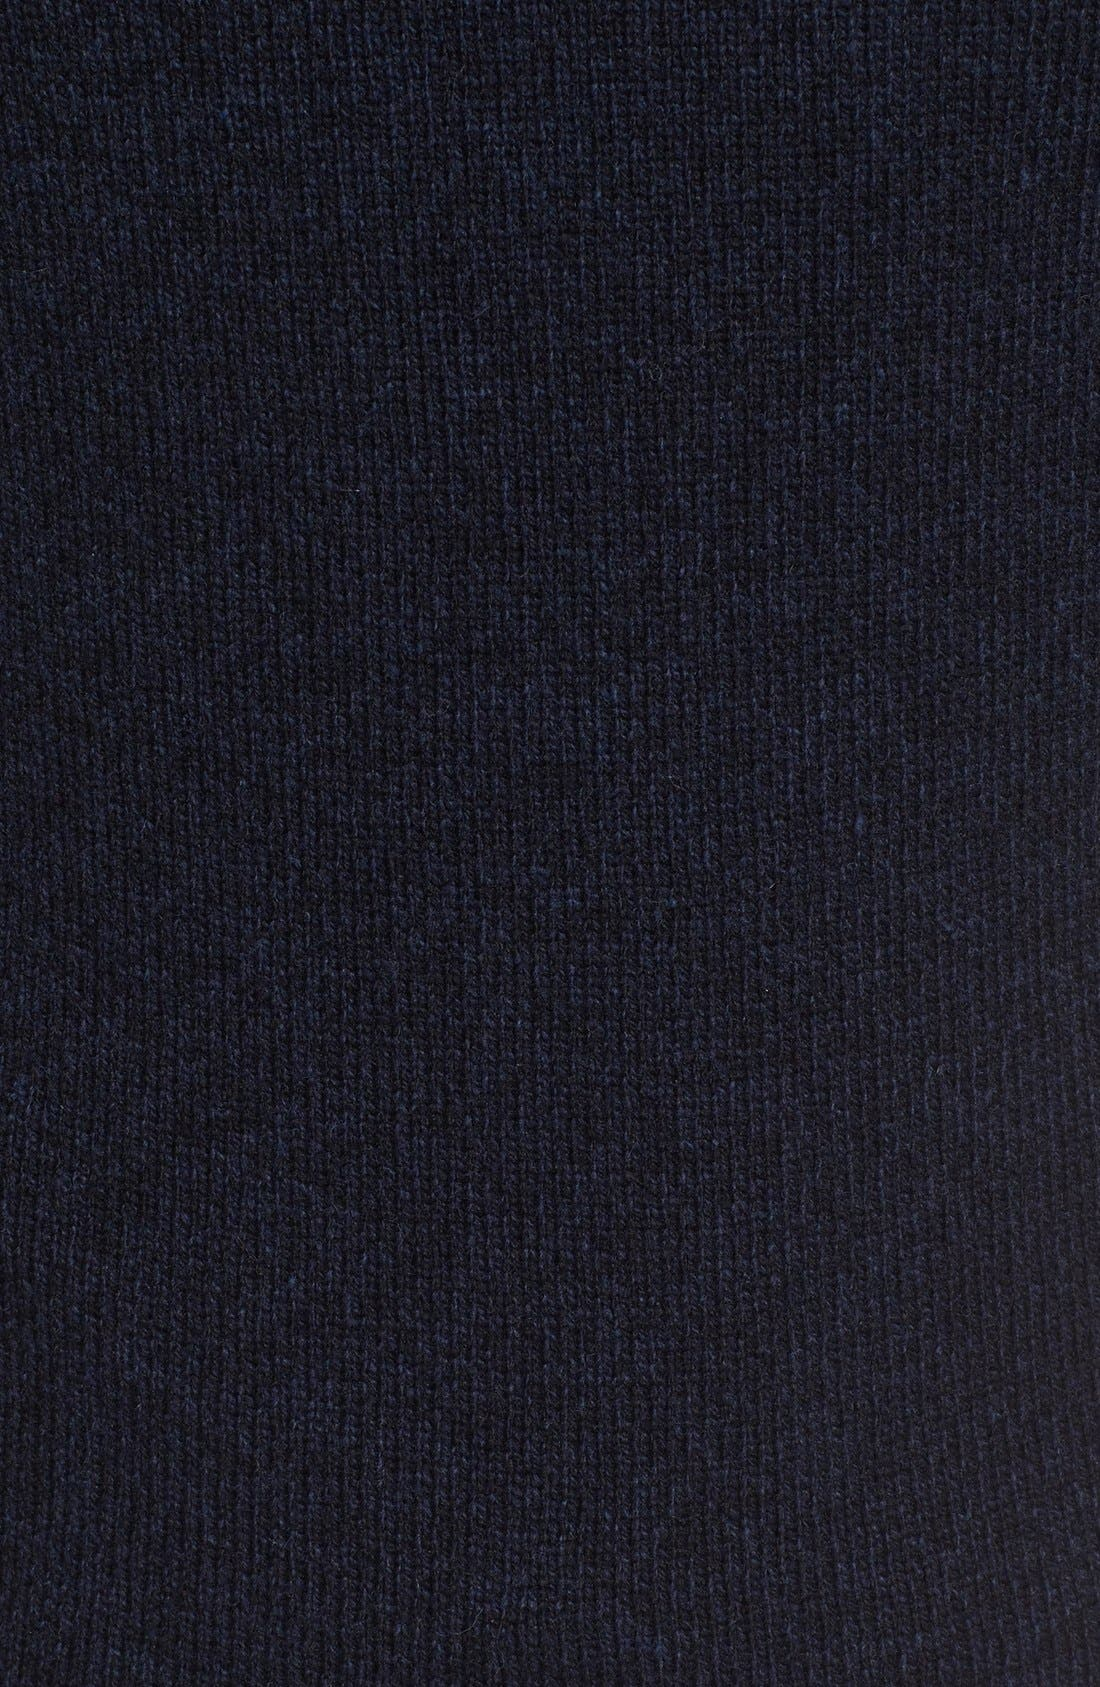 Stredwick Lambswool Sweater,                             Alternate thumbnail 25, color,